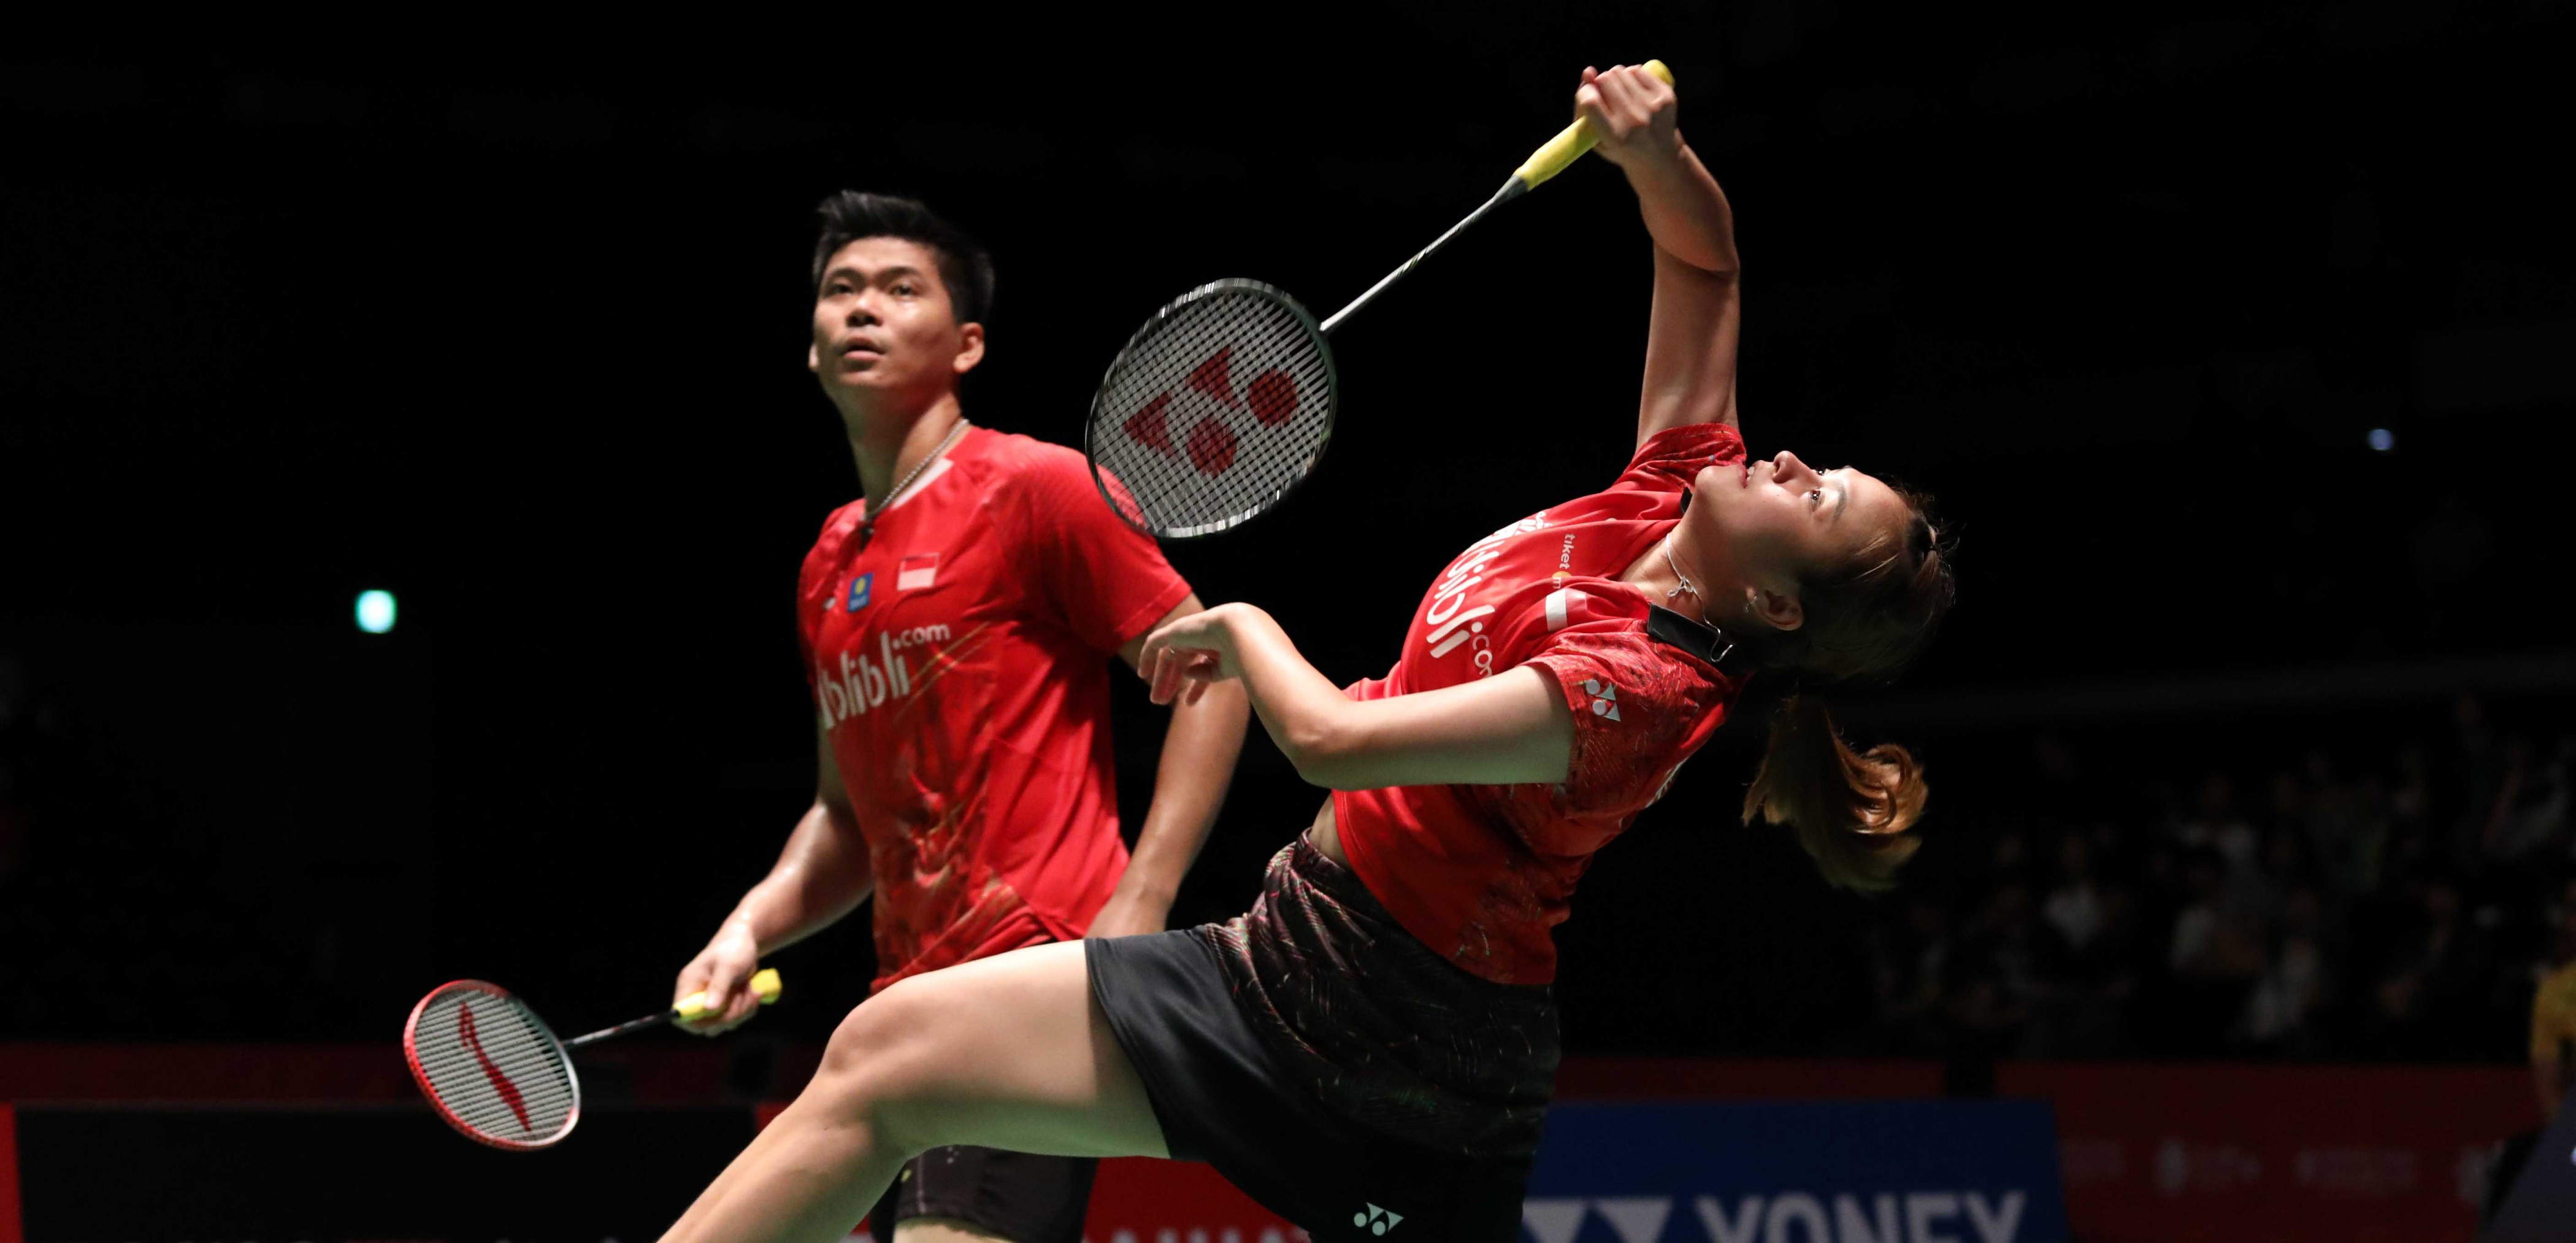 Praveen / Melati Kandas di Perempat Final Japan Open 2018